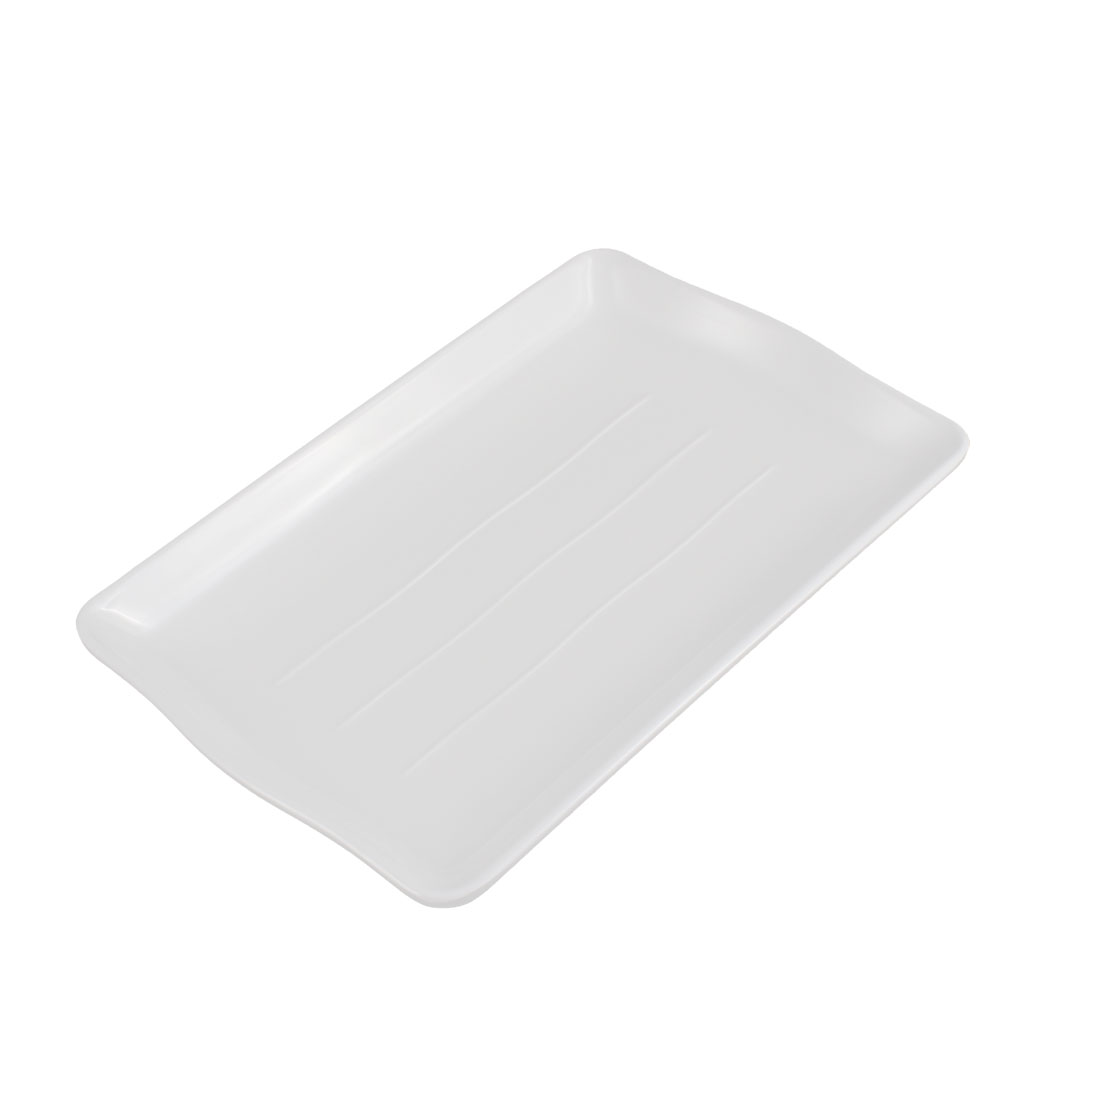 Home Restaurant Plastic Lunch Food Serving Dish Plate White 21 x 13.5cm